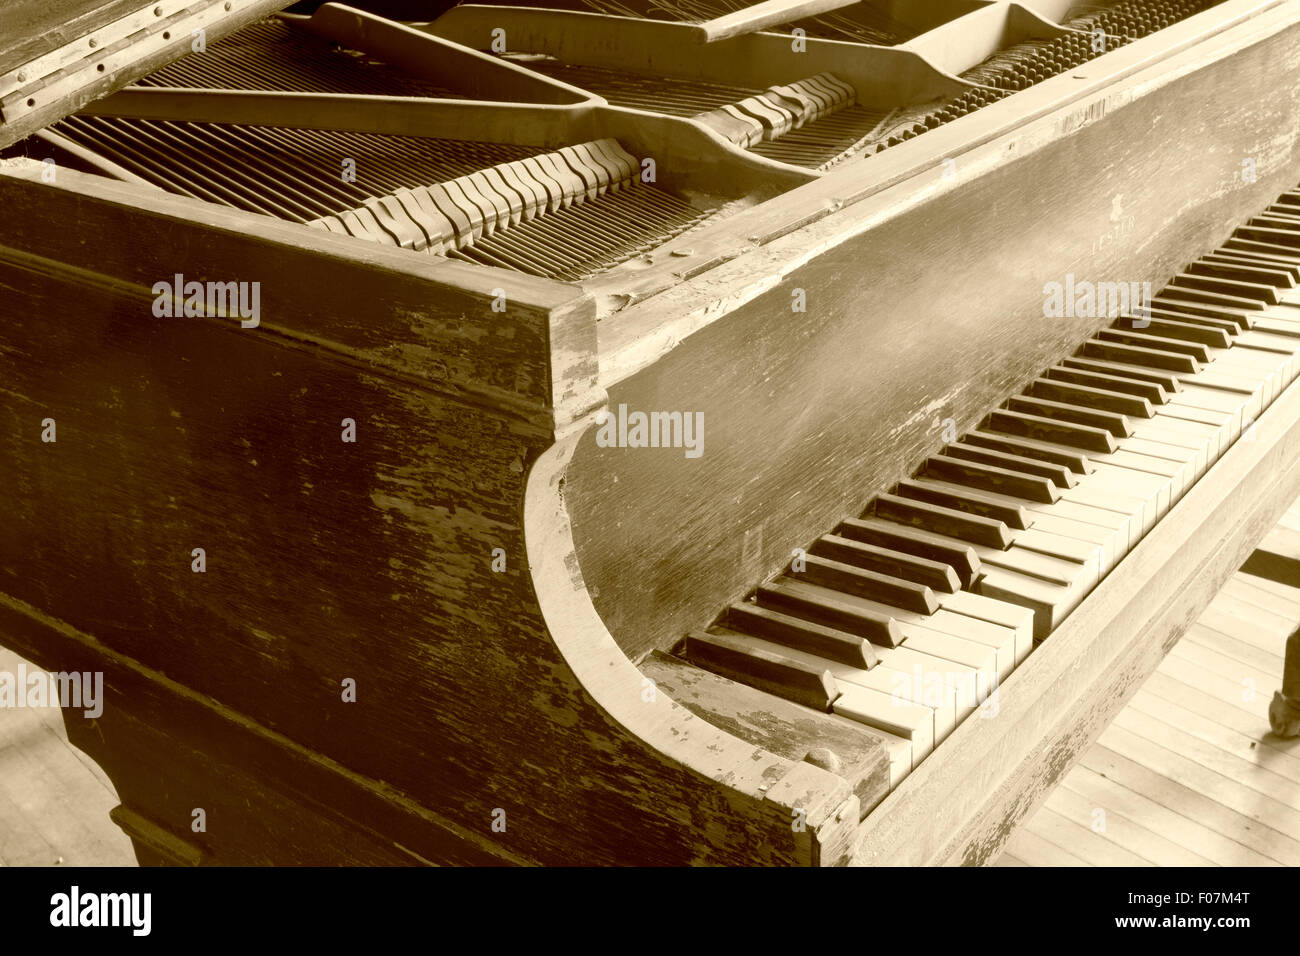 Wooden piano keyboard in sepia tones. - Stock Image